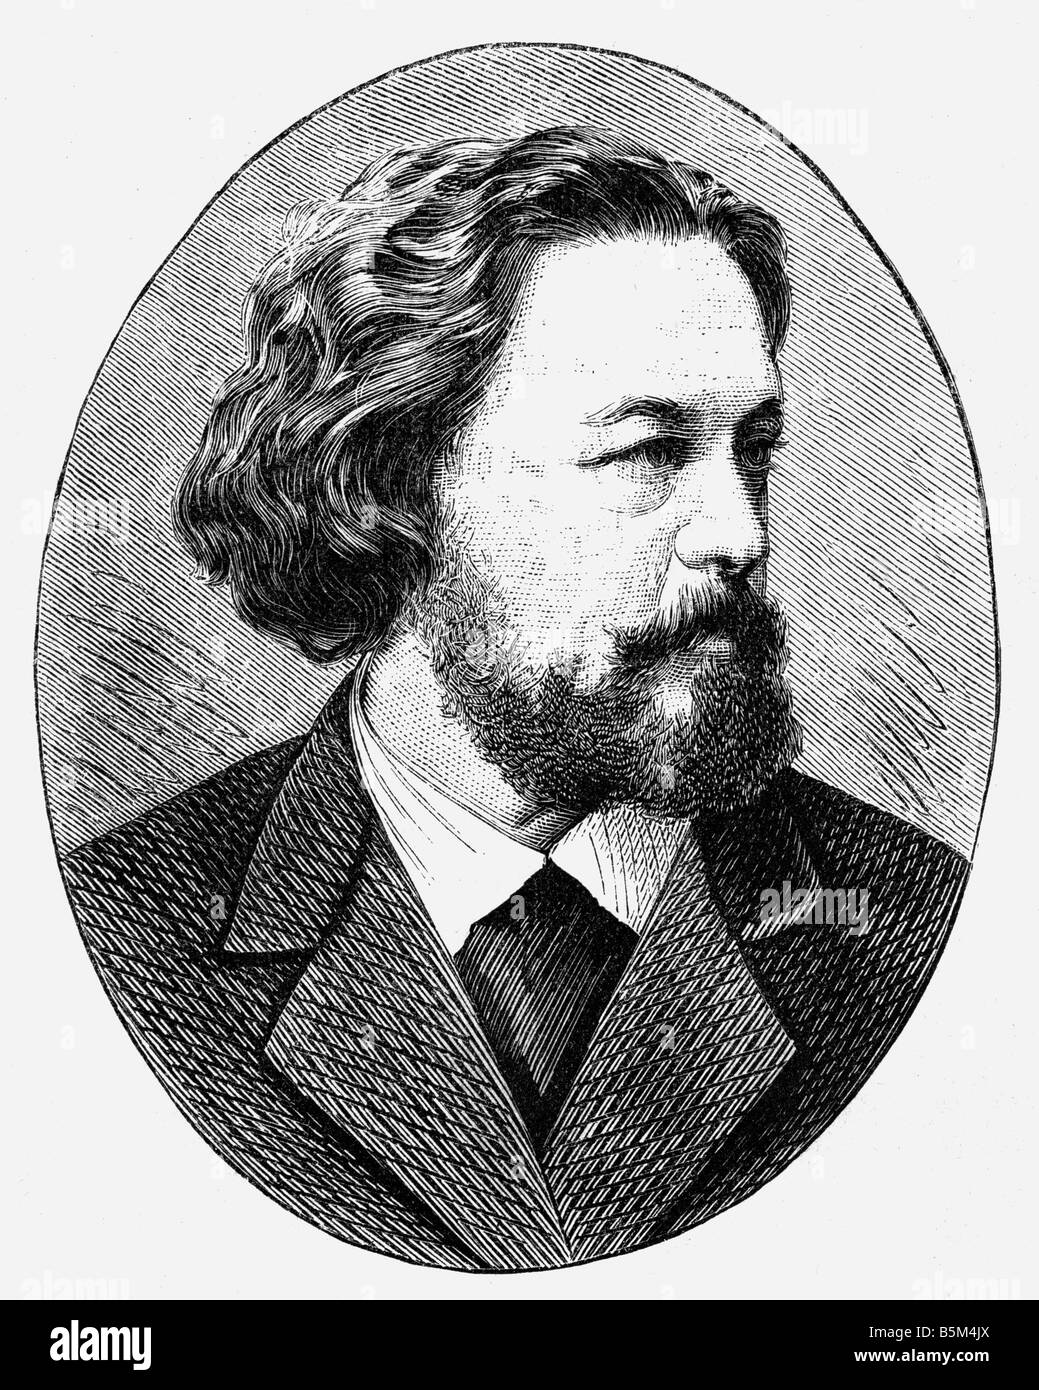 Heyse, Paul, 15.3.1830 - 2.4.1914, German author/writer, portrait, wood engraving, 19th century, Additional-Rights - Stock Image